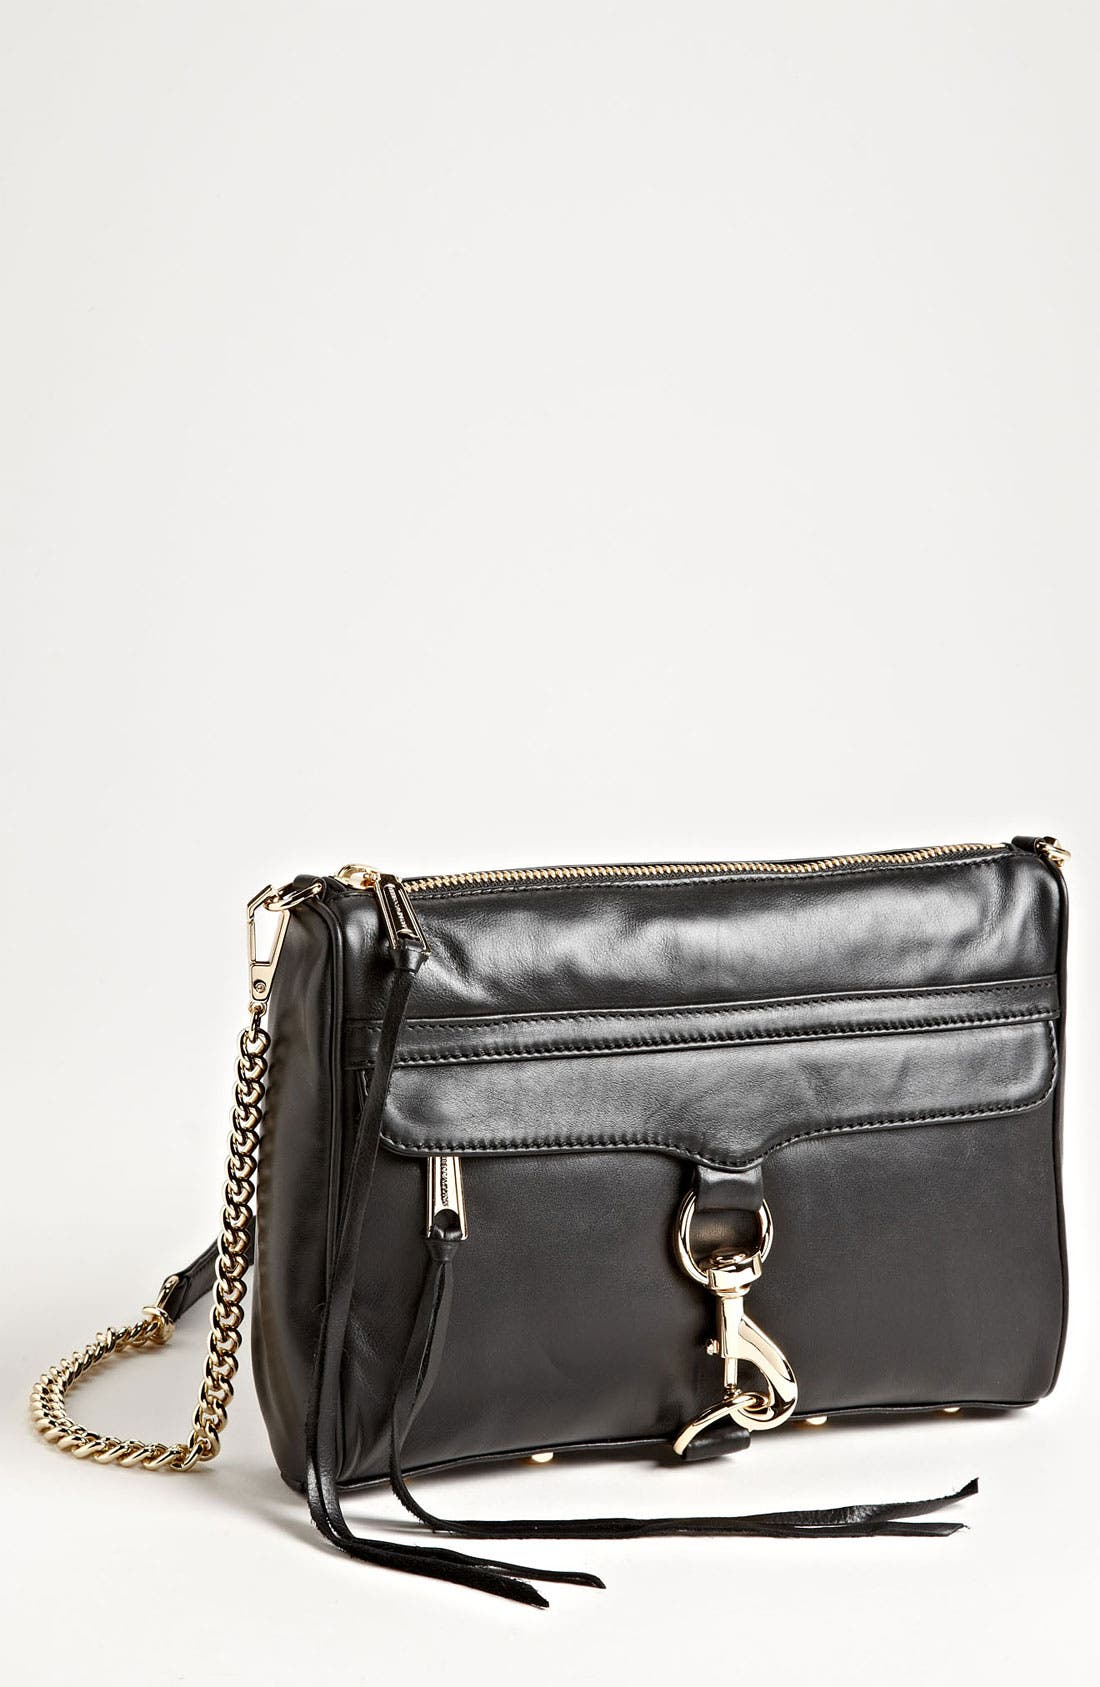 'MAC' Convertible Crossbody Bag,                         Main,                         color, 001